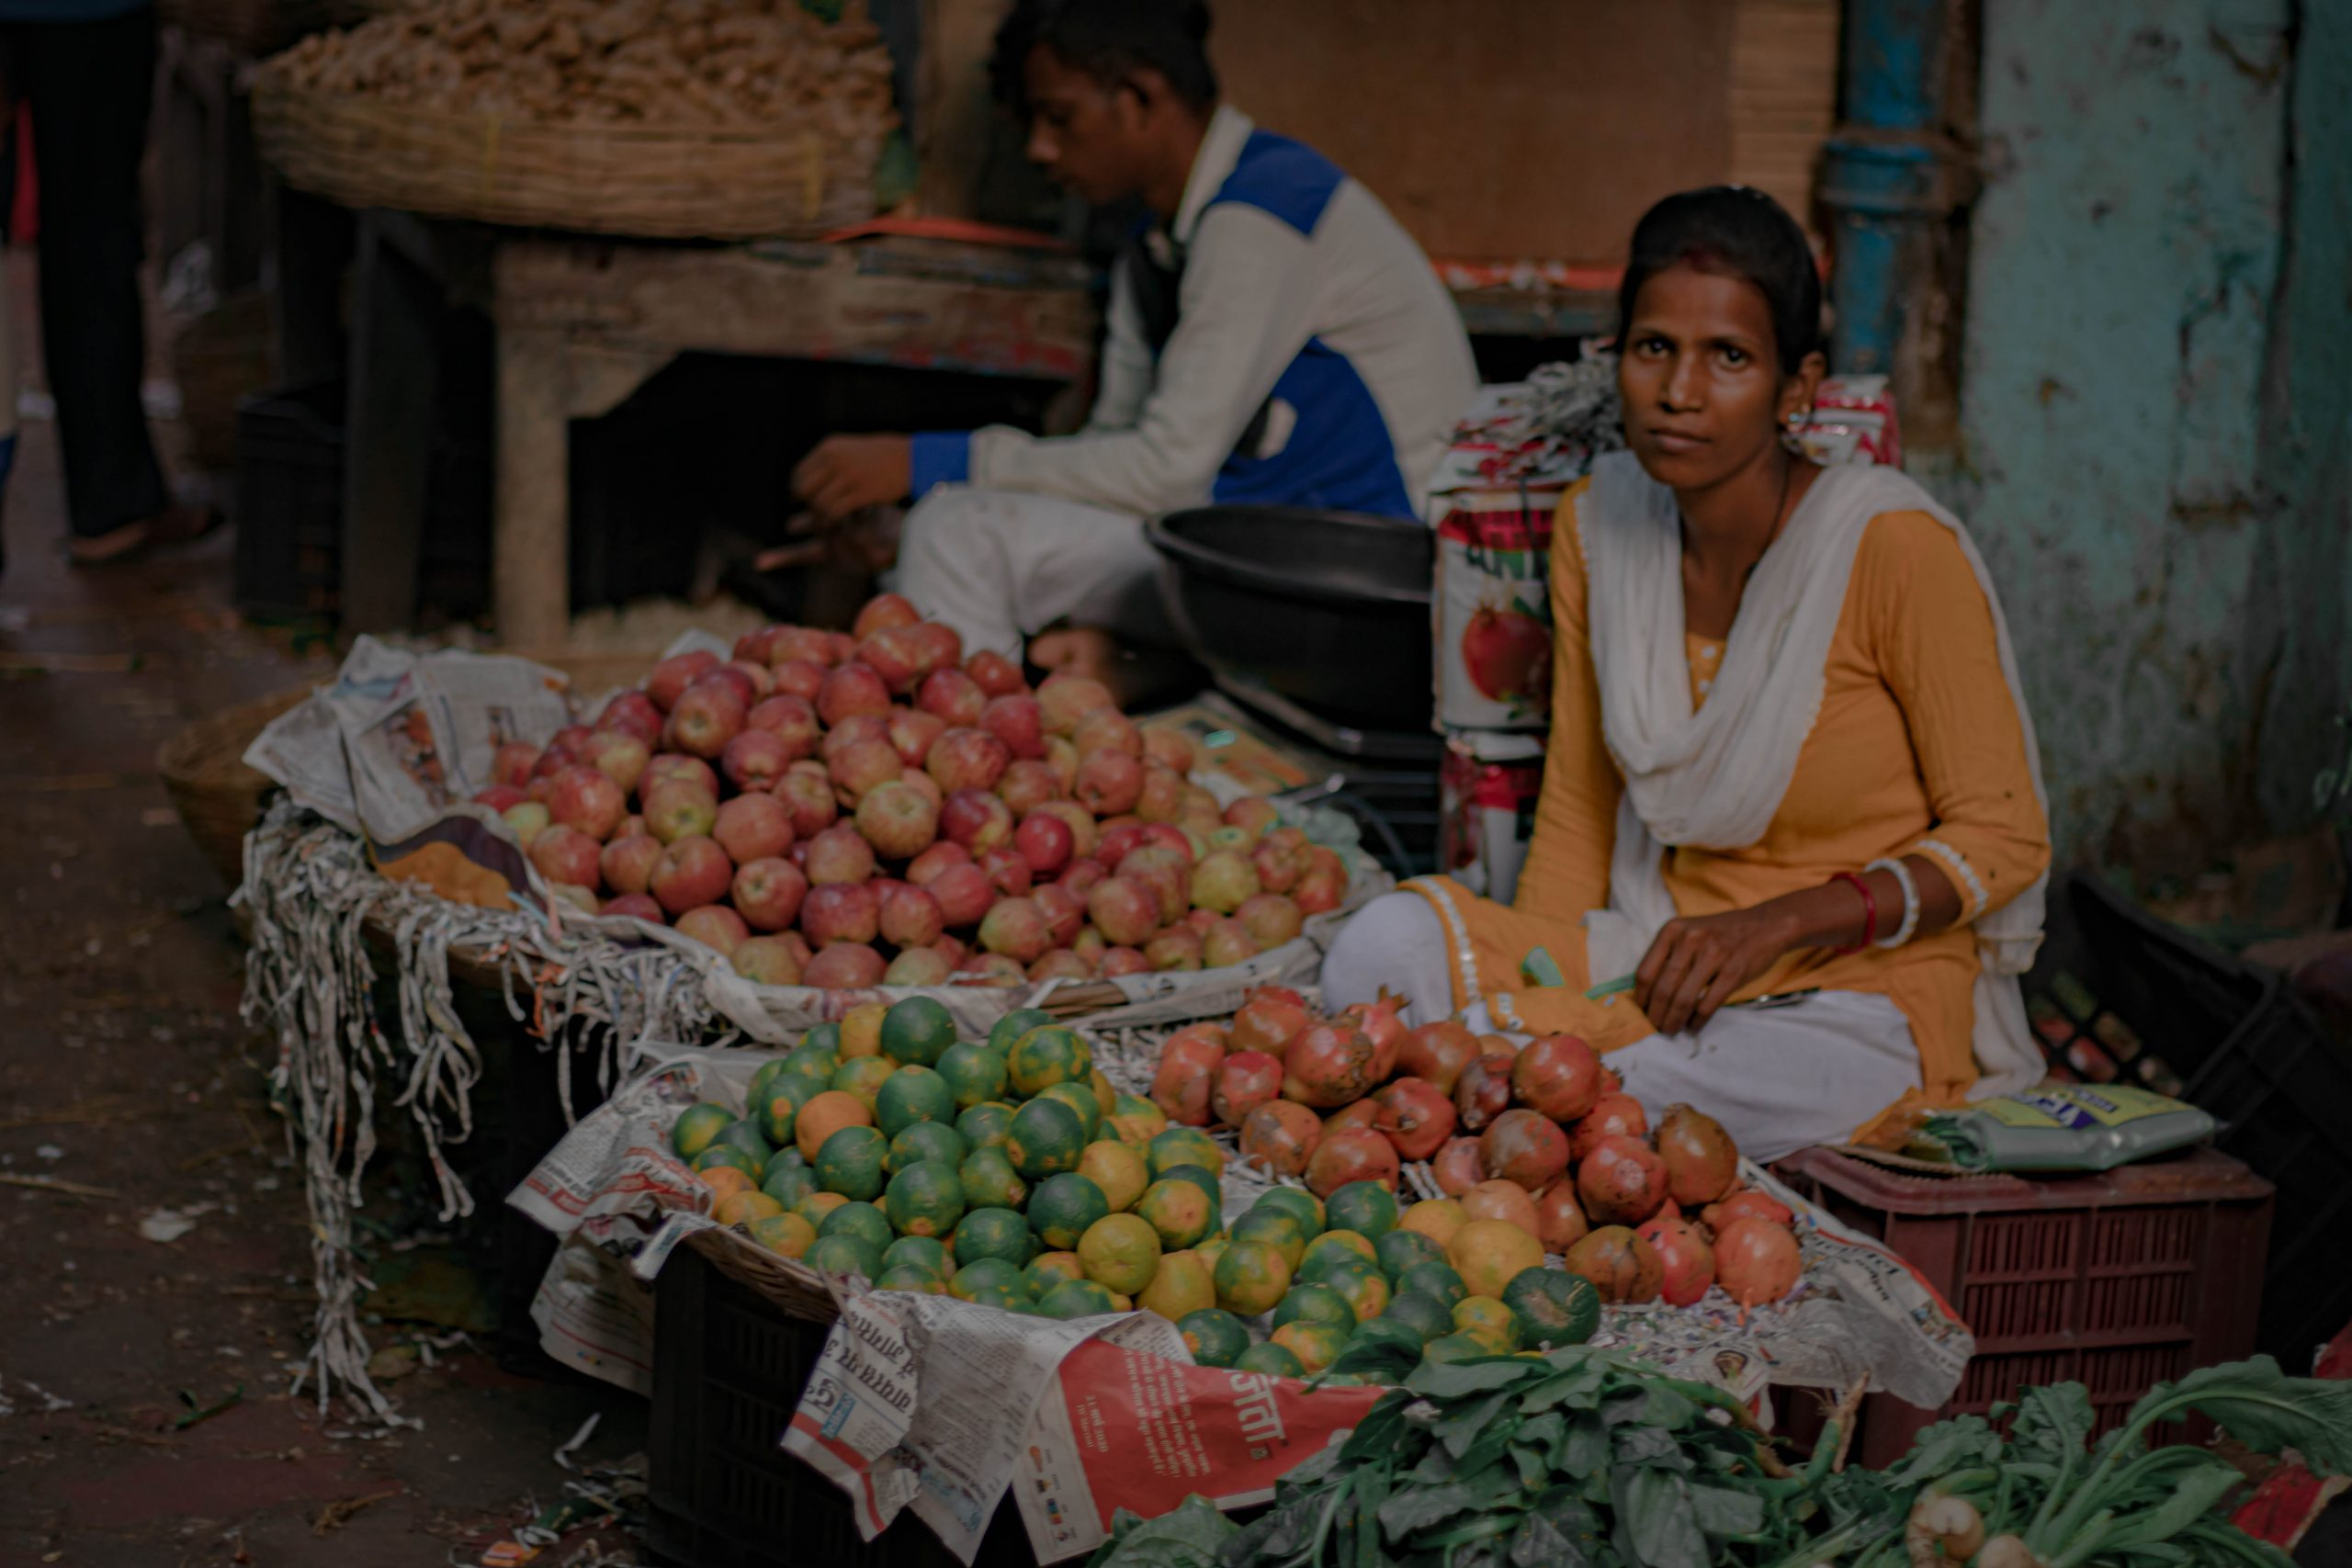 A couple selling fruits